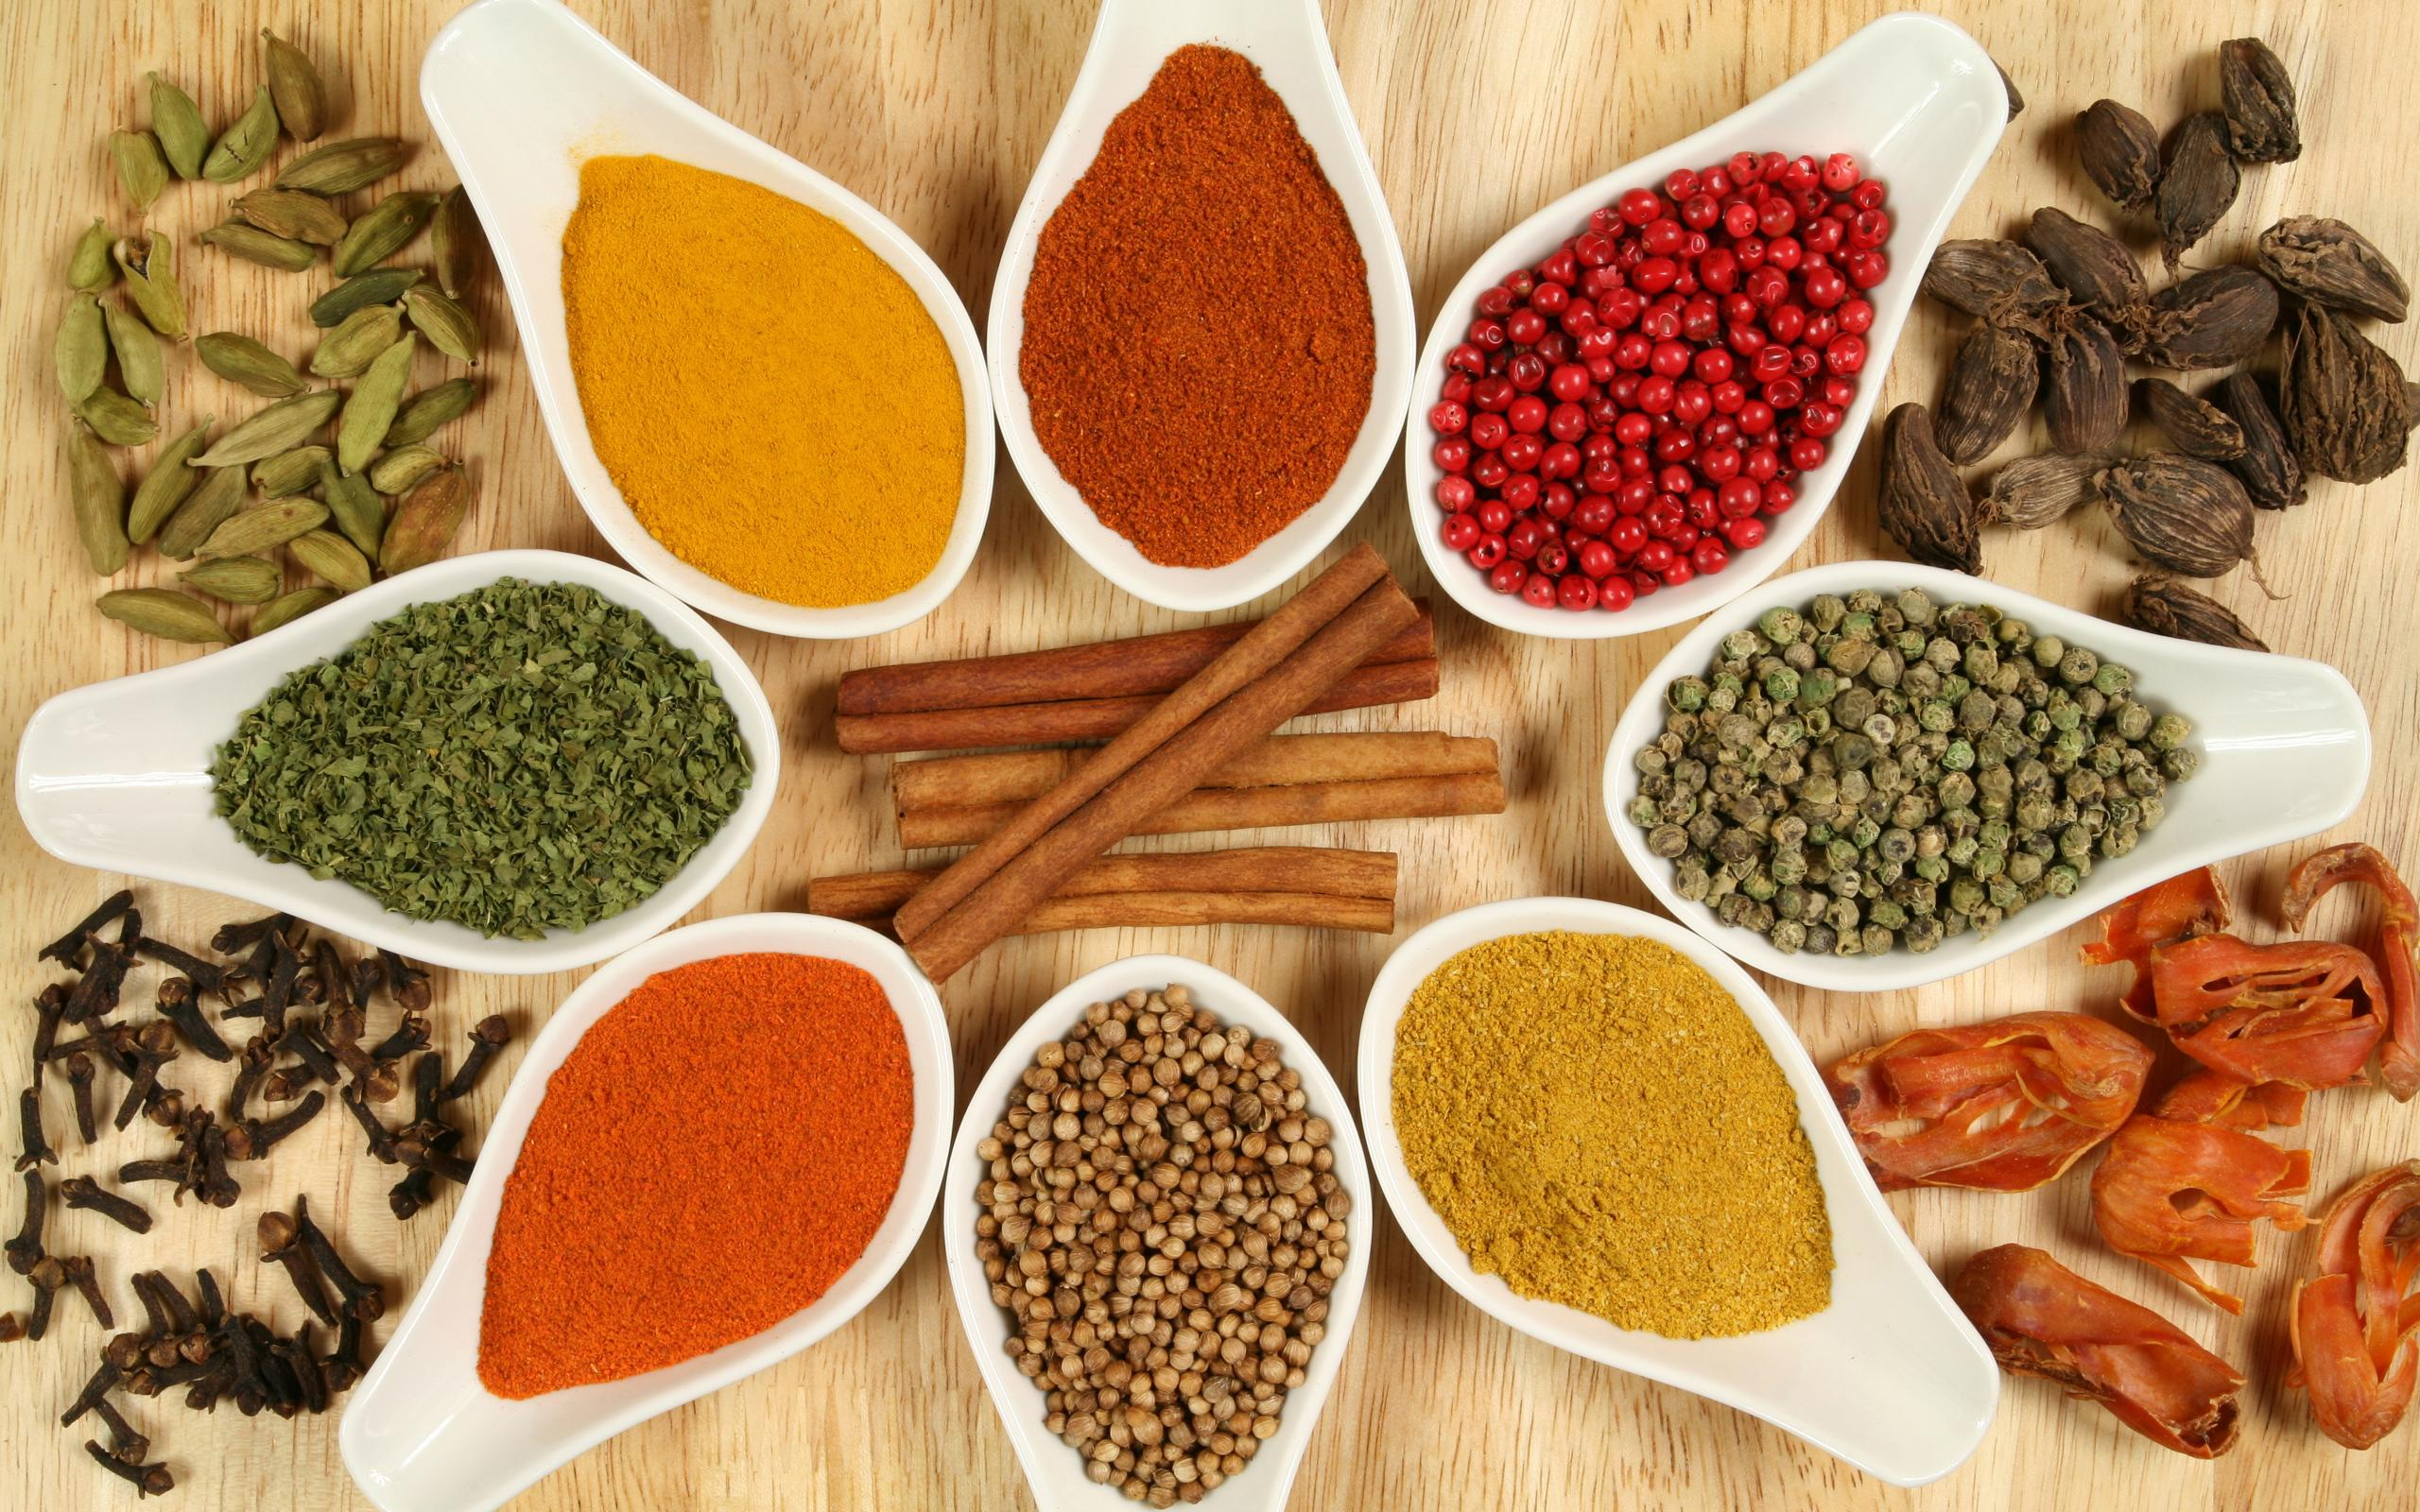 Herbs and Spices HD Wallpaper | Background Image | 2560x1600 | ID ...